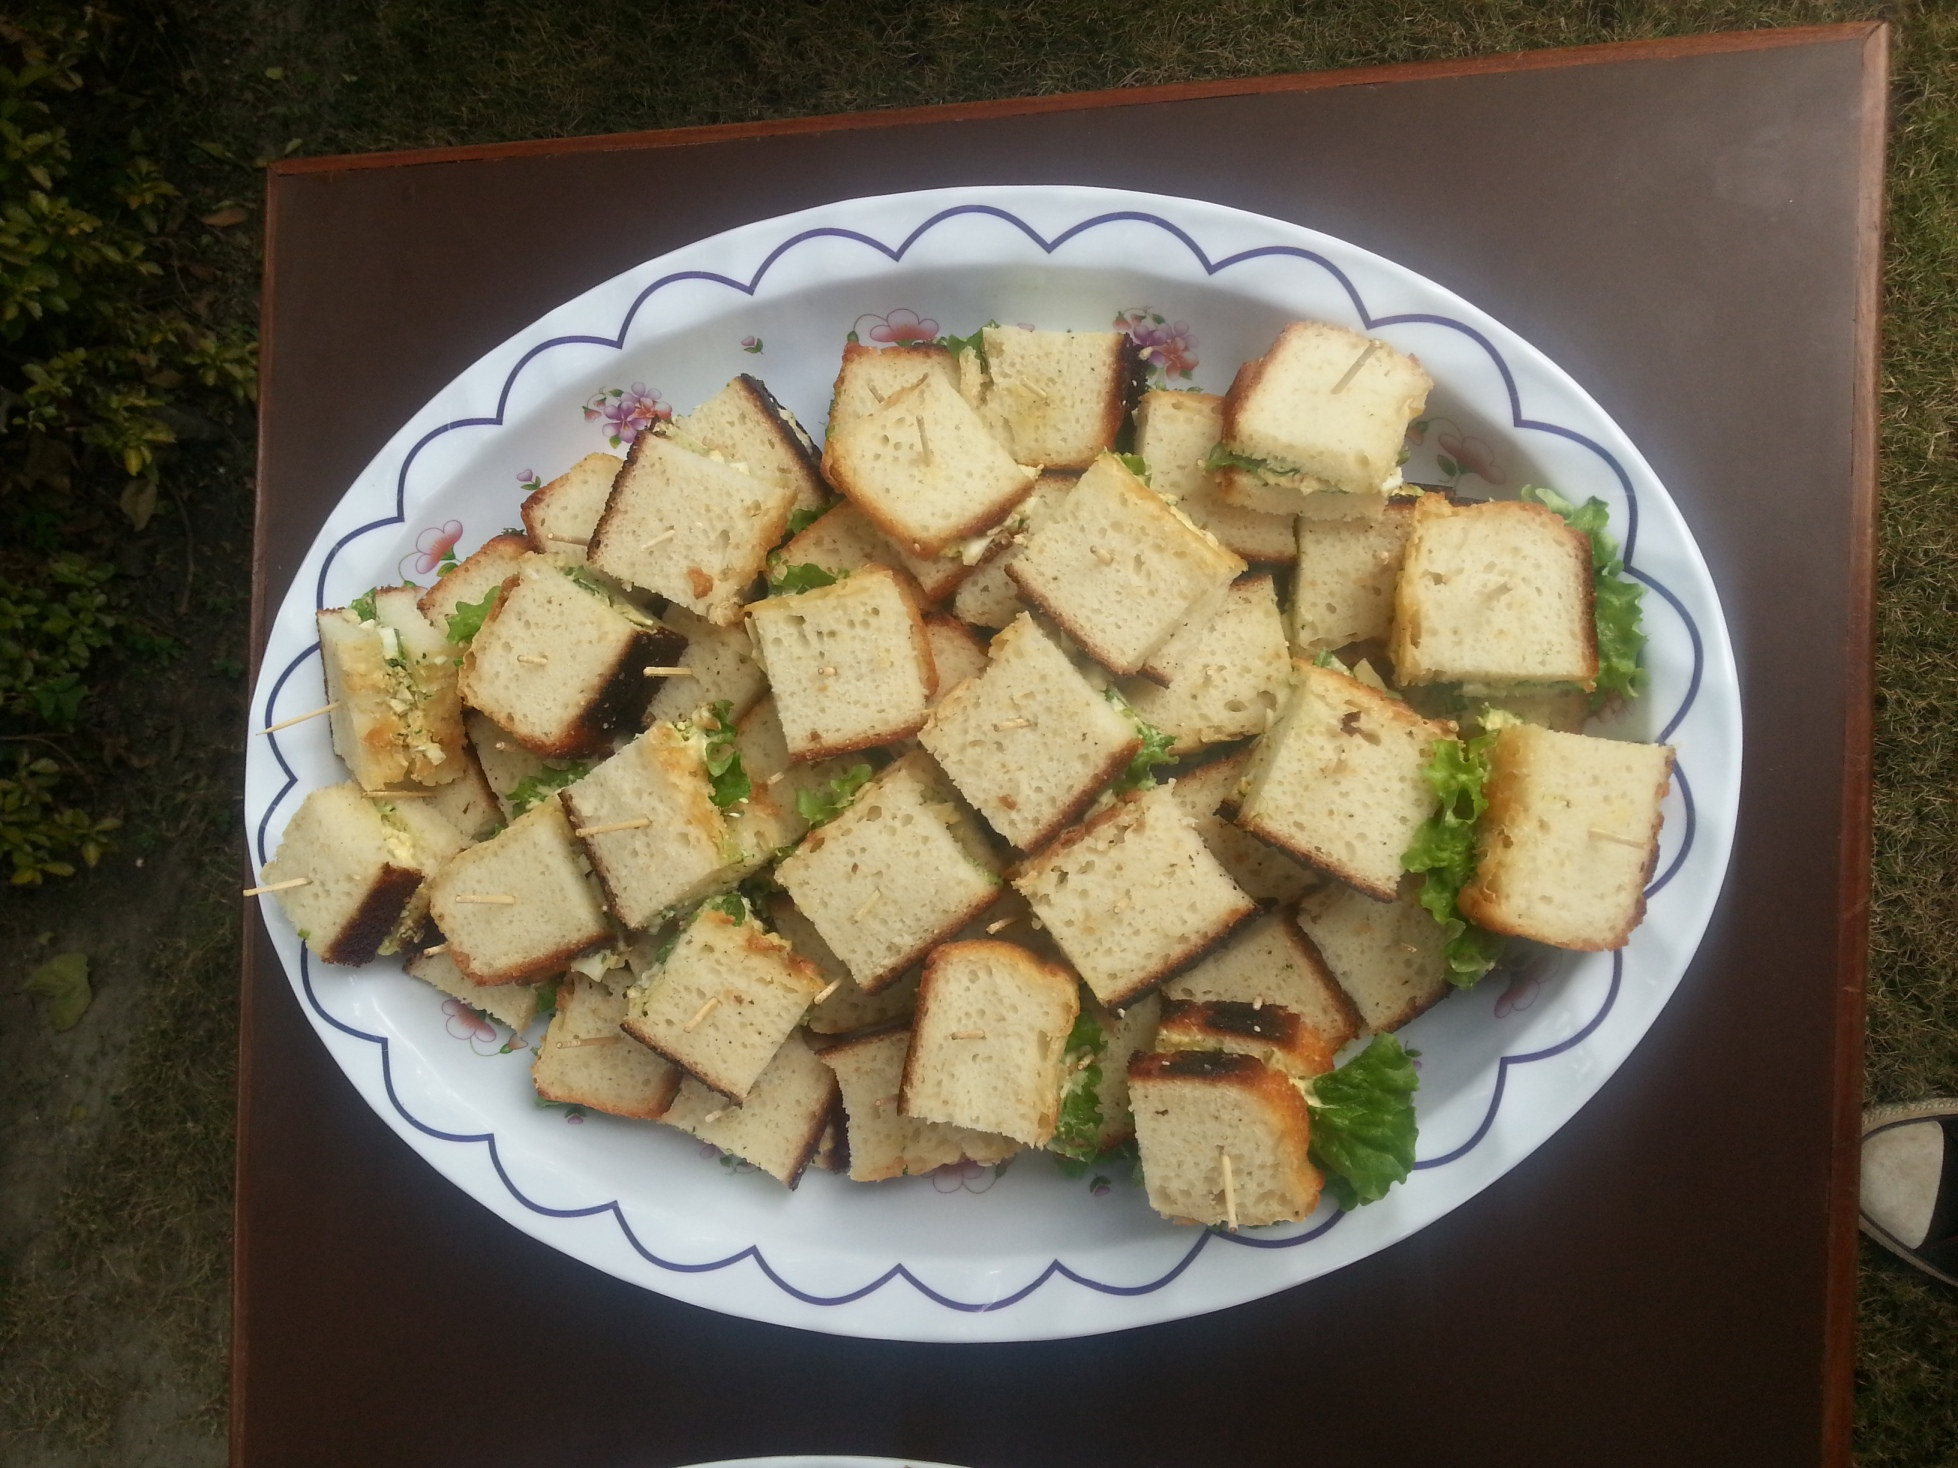 Sandwiches - curry egg salad w. pickled cucumber